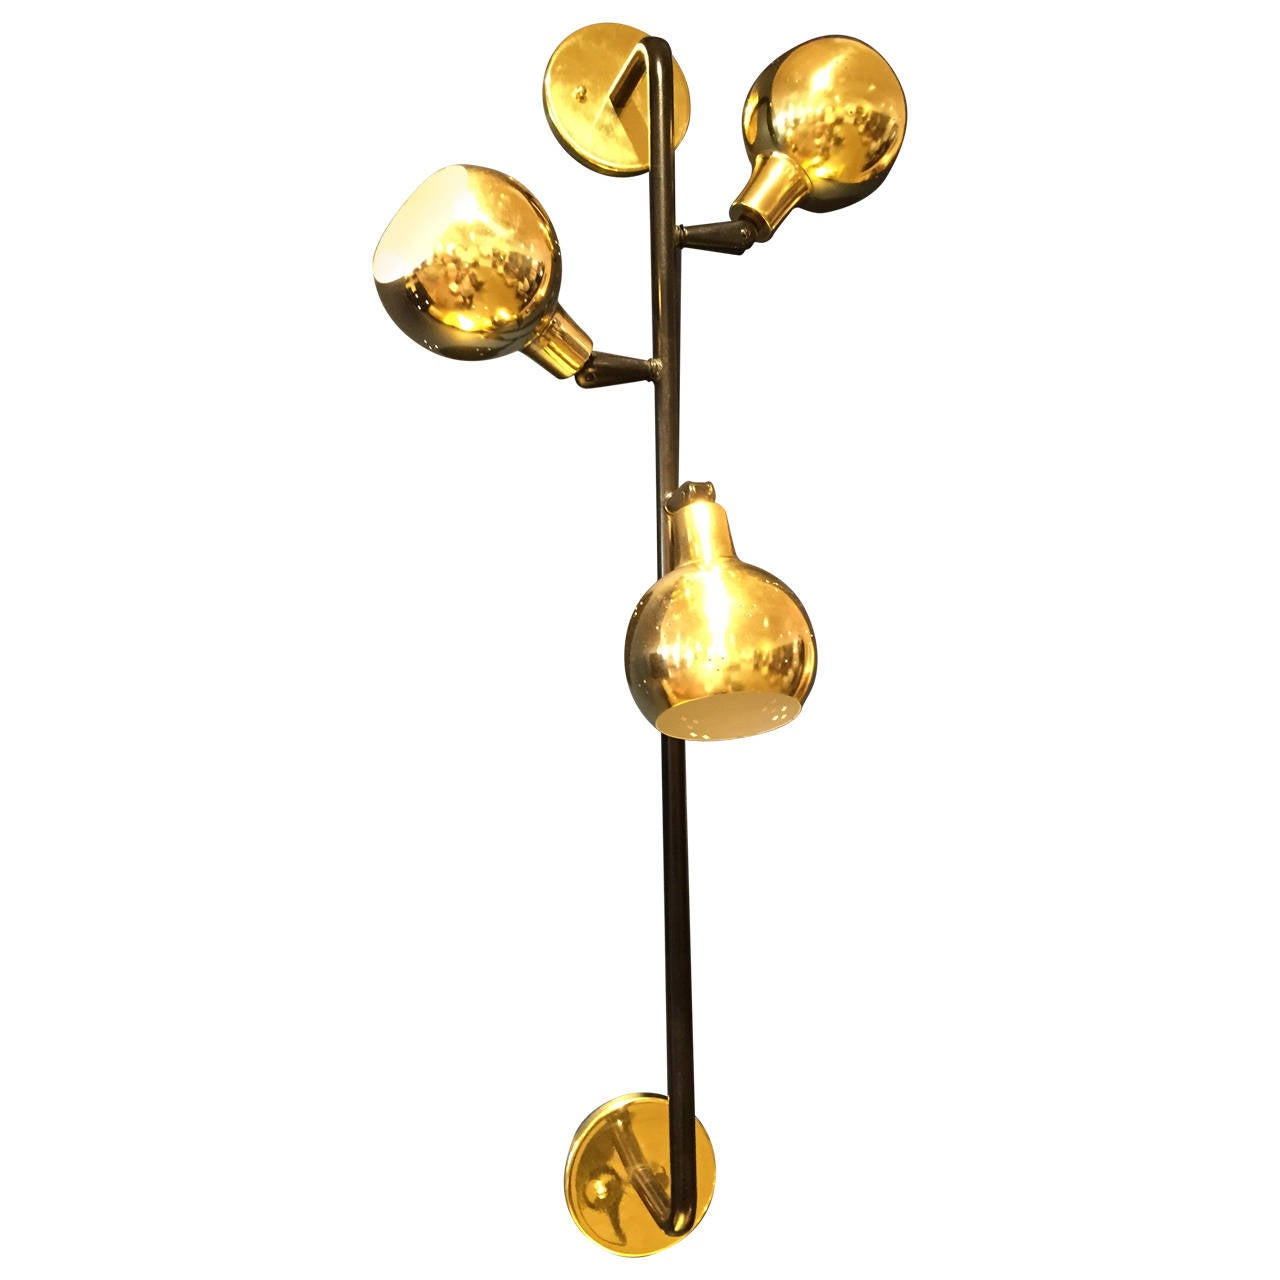 Three Globes in Brass Wall Light For Sale at 1stdibs